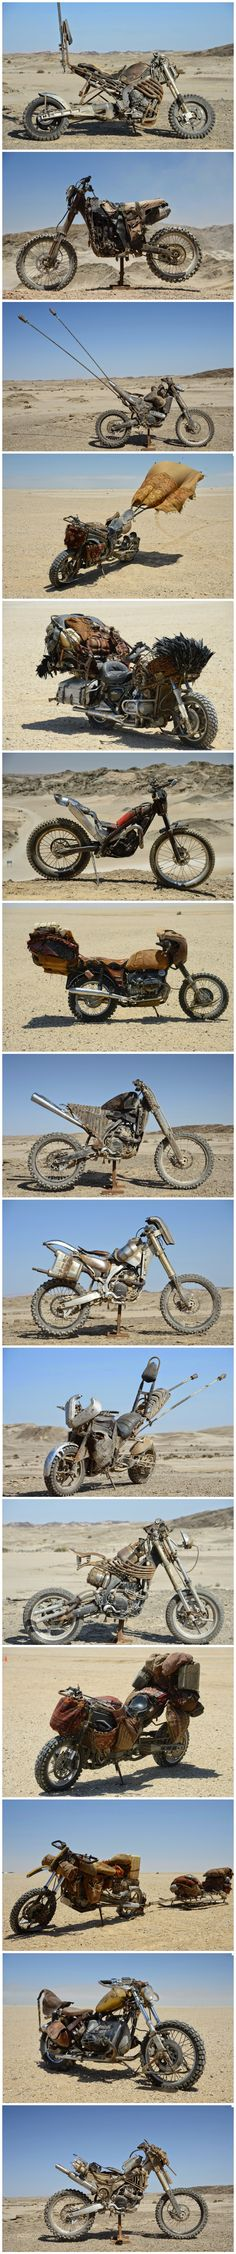 The custom motorcycles